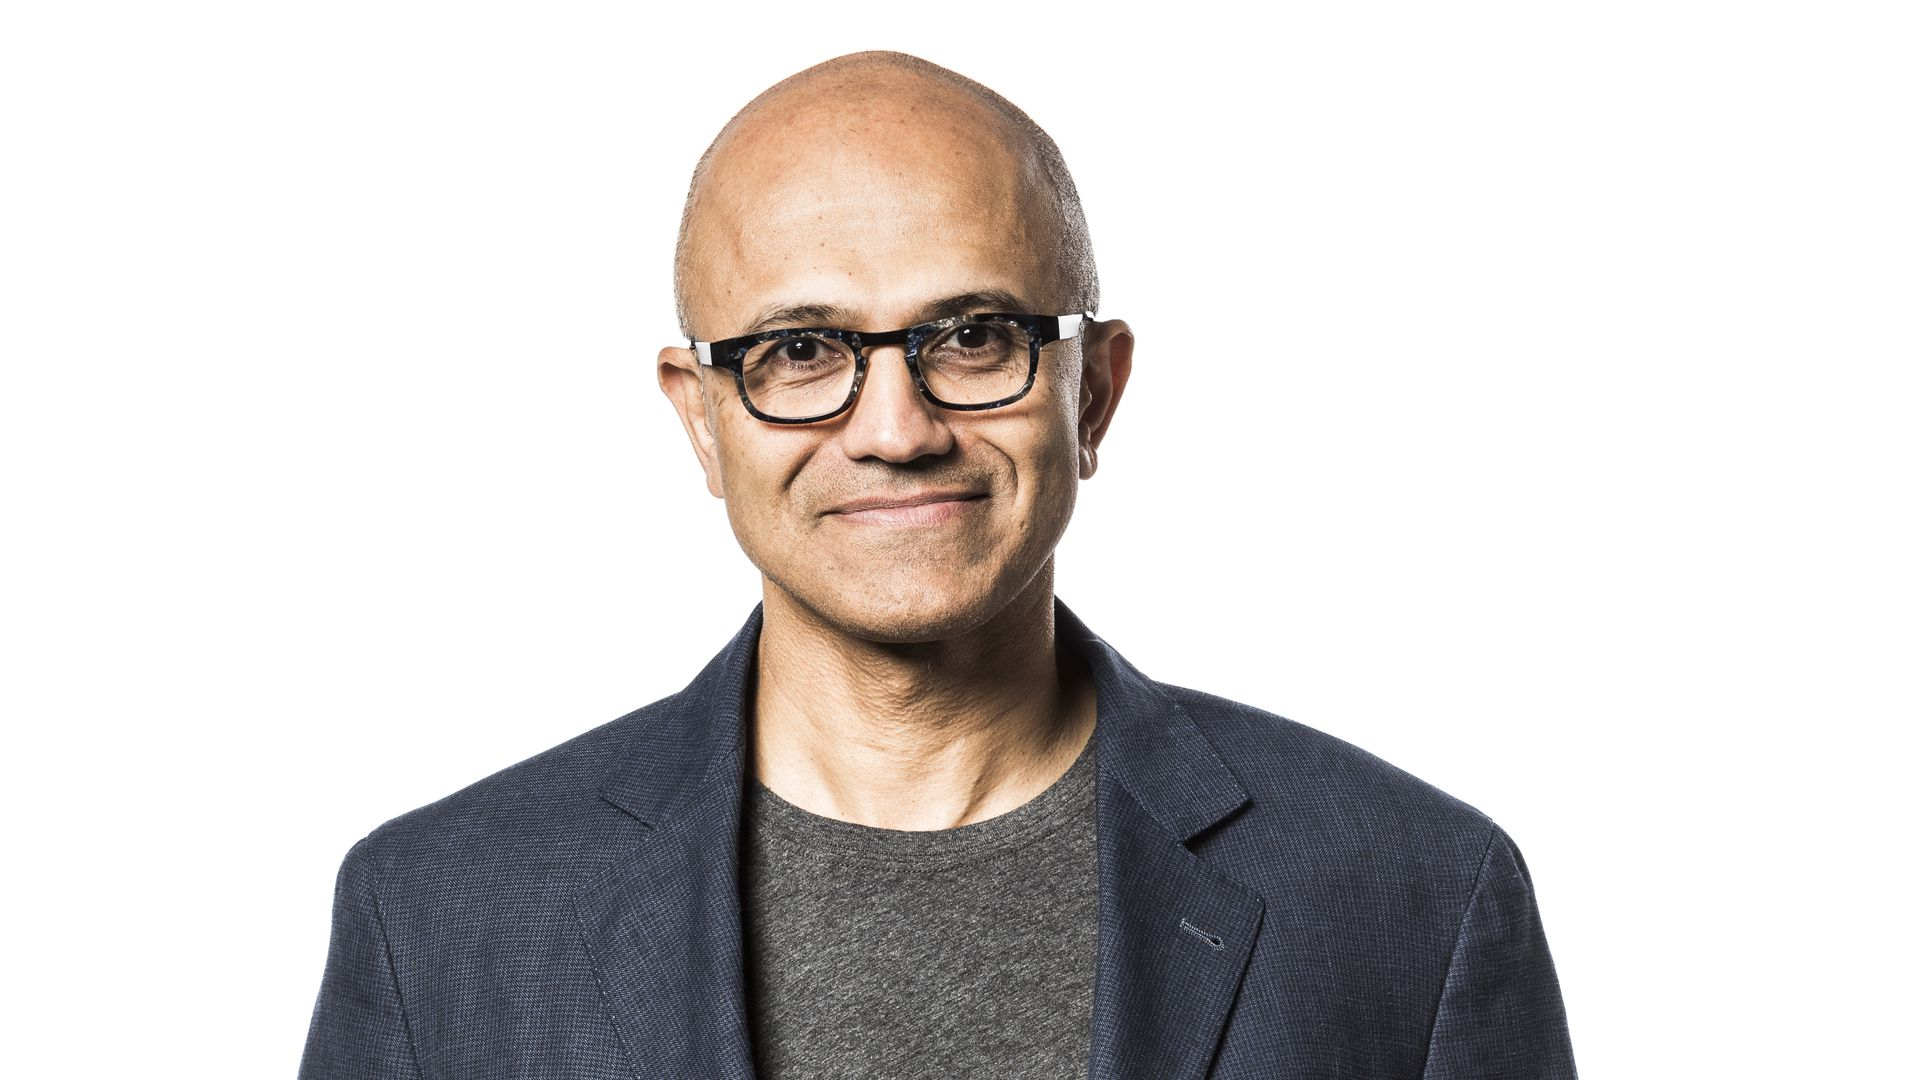 Microsoft CEO Satya Nadella in a corporate portrait